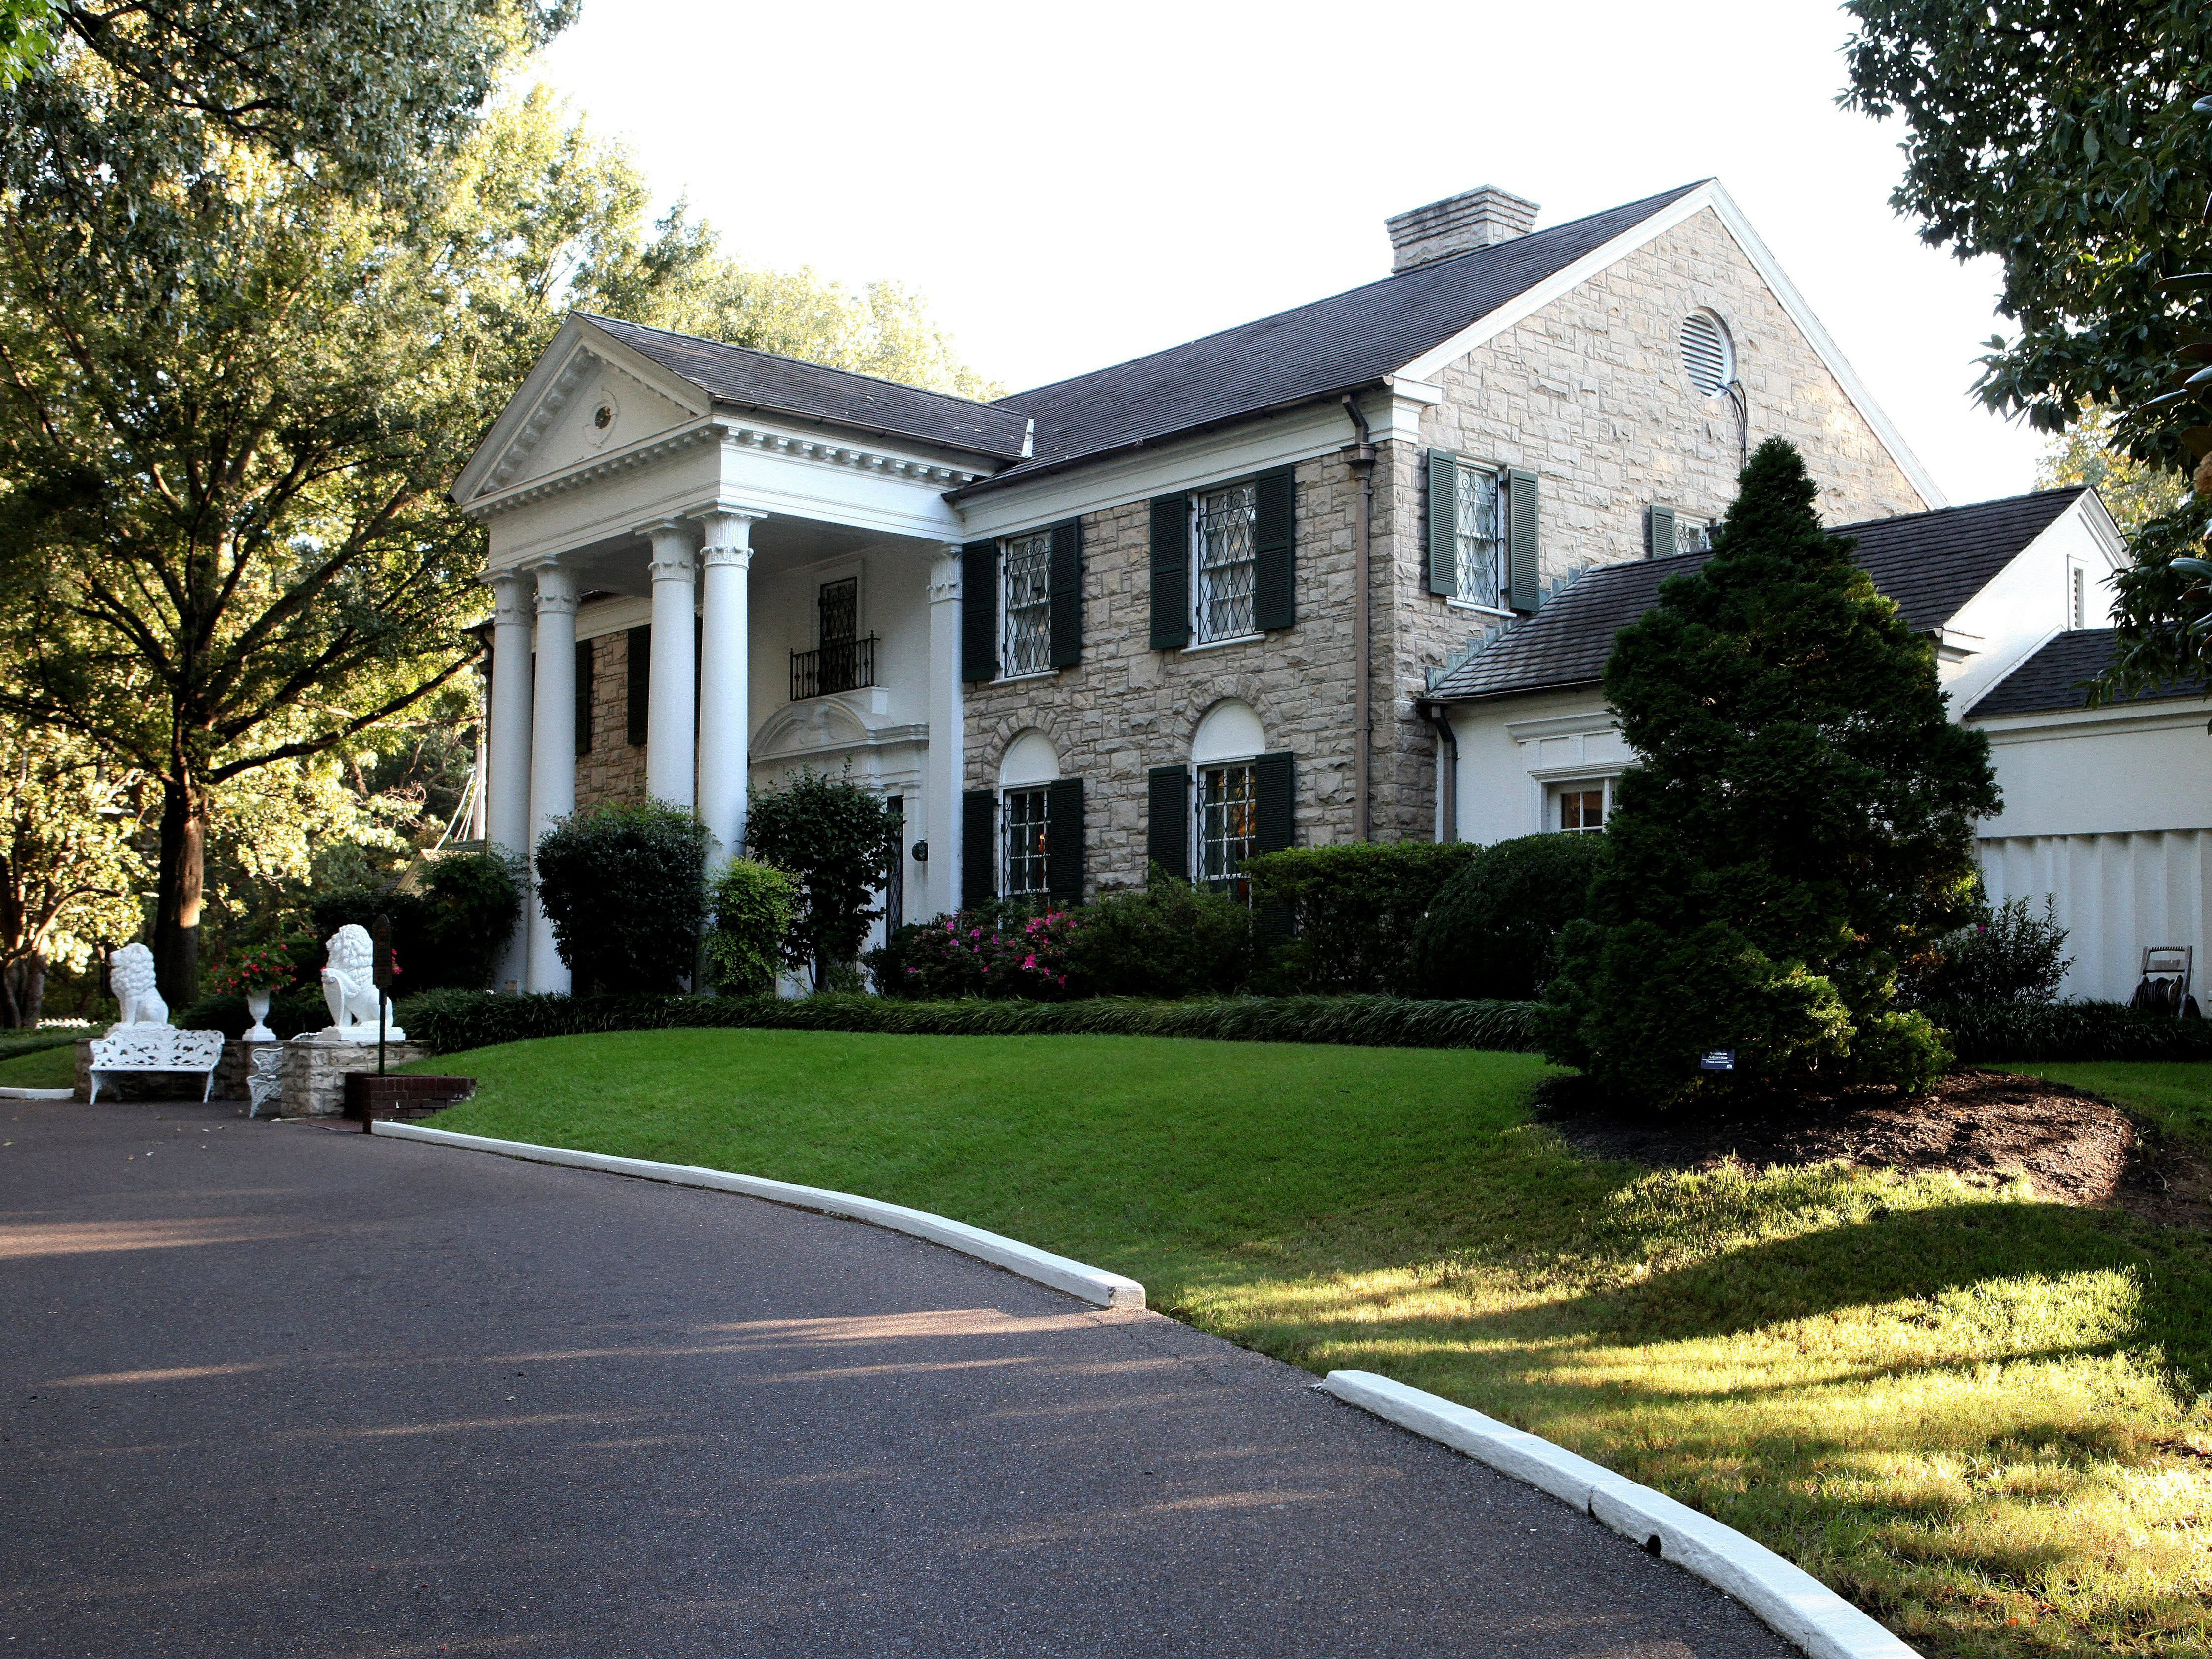 decorative driveway markers.htm a look at graceland mansion  home of elvis  a look at graceland mansion  home of elvis